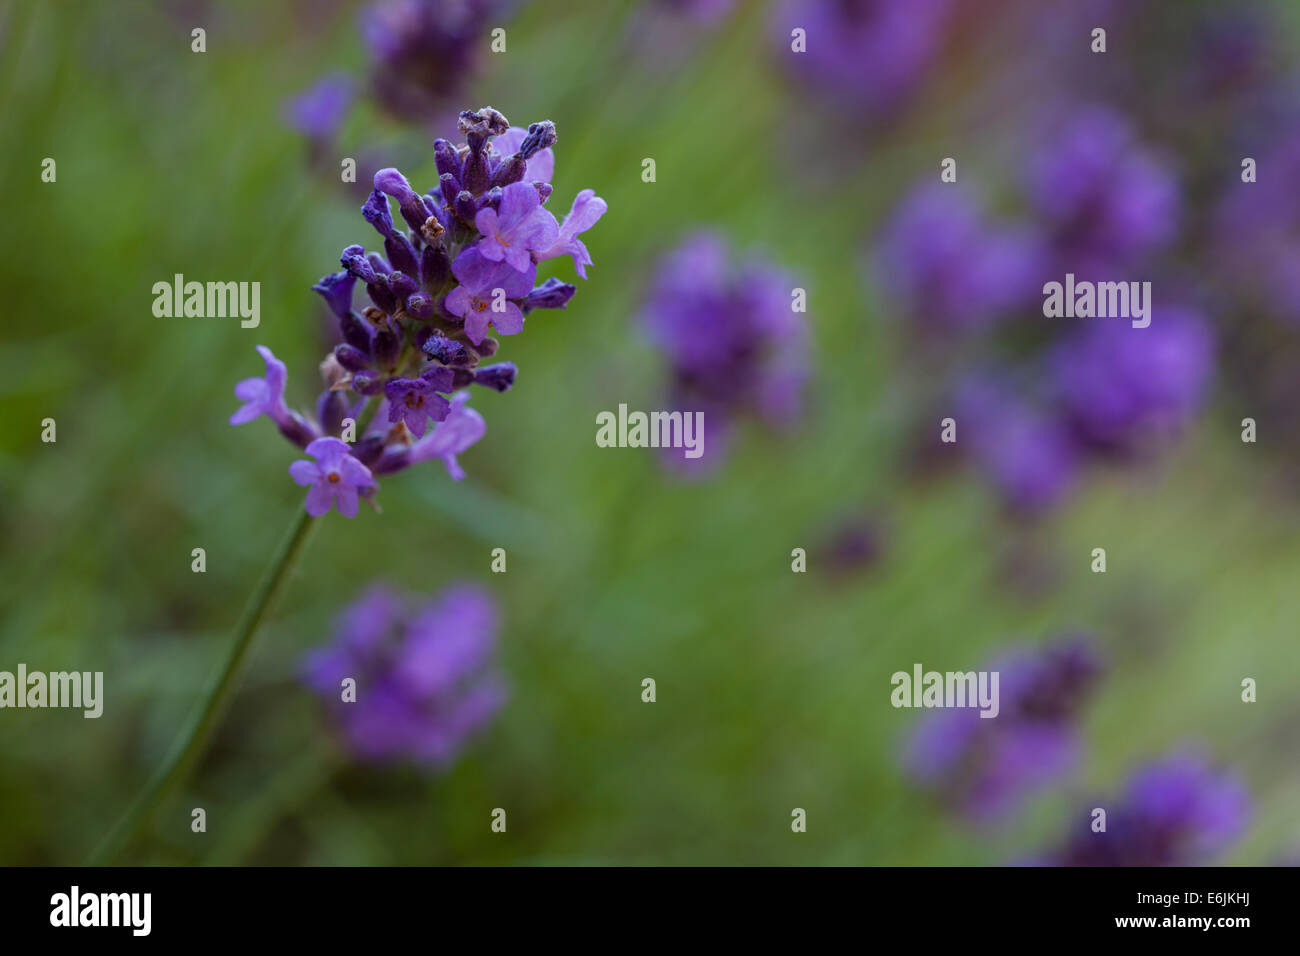 Close-up of a single flowering lavender stem with blurred stems in the background photographed life size using a - Stock Image